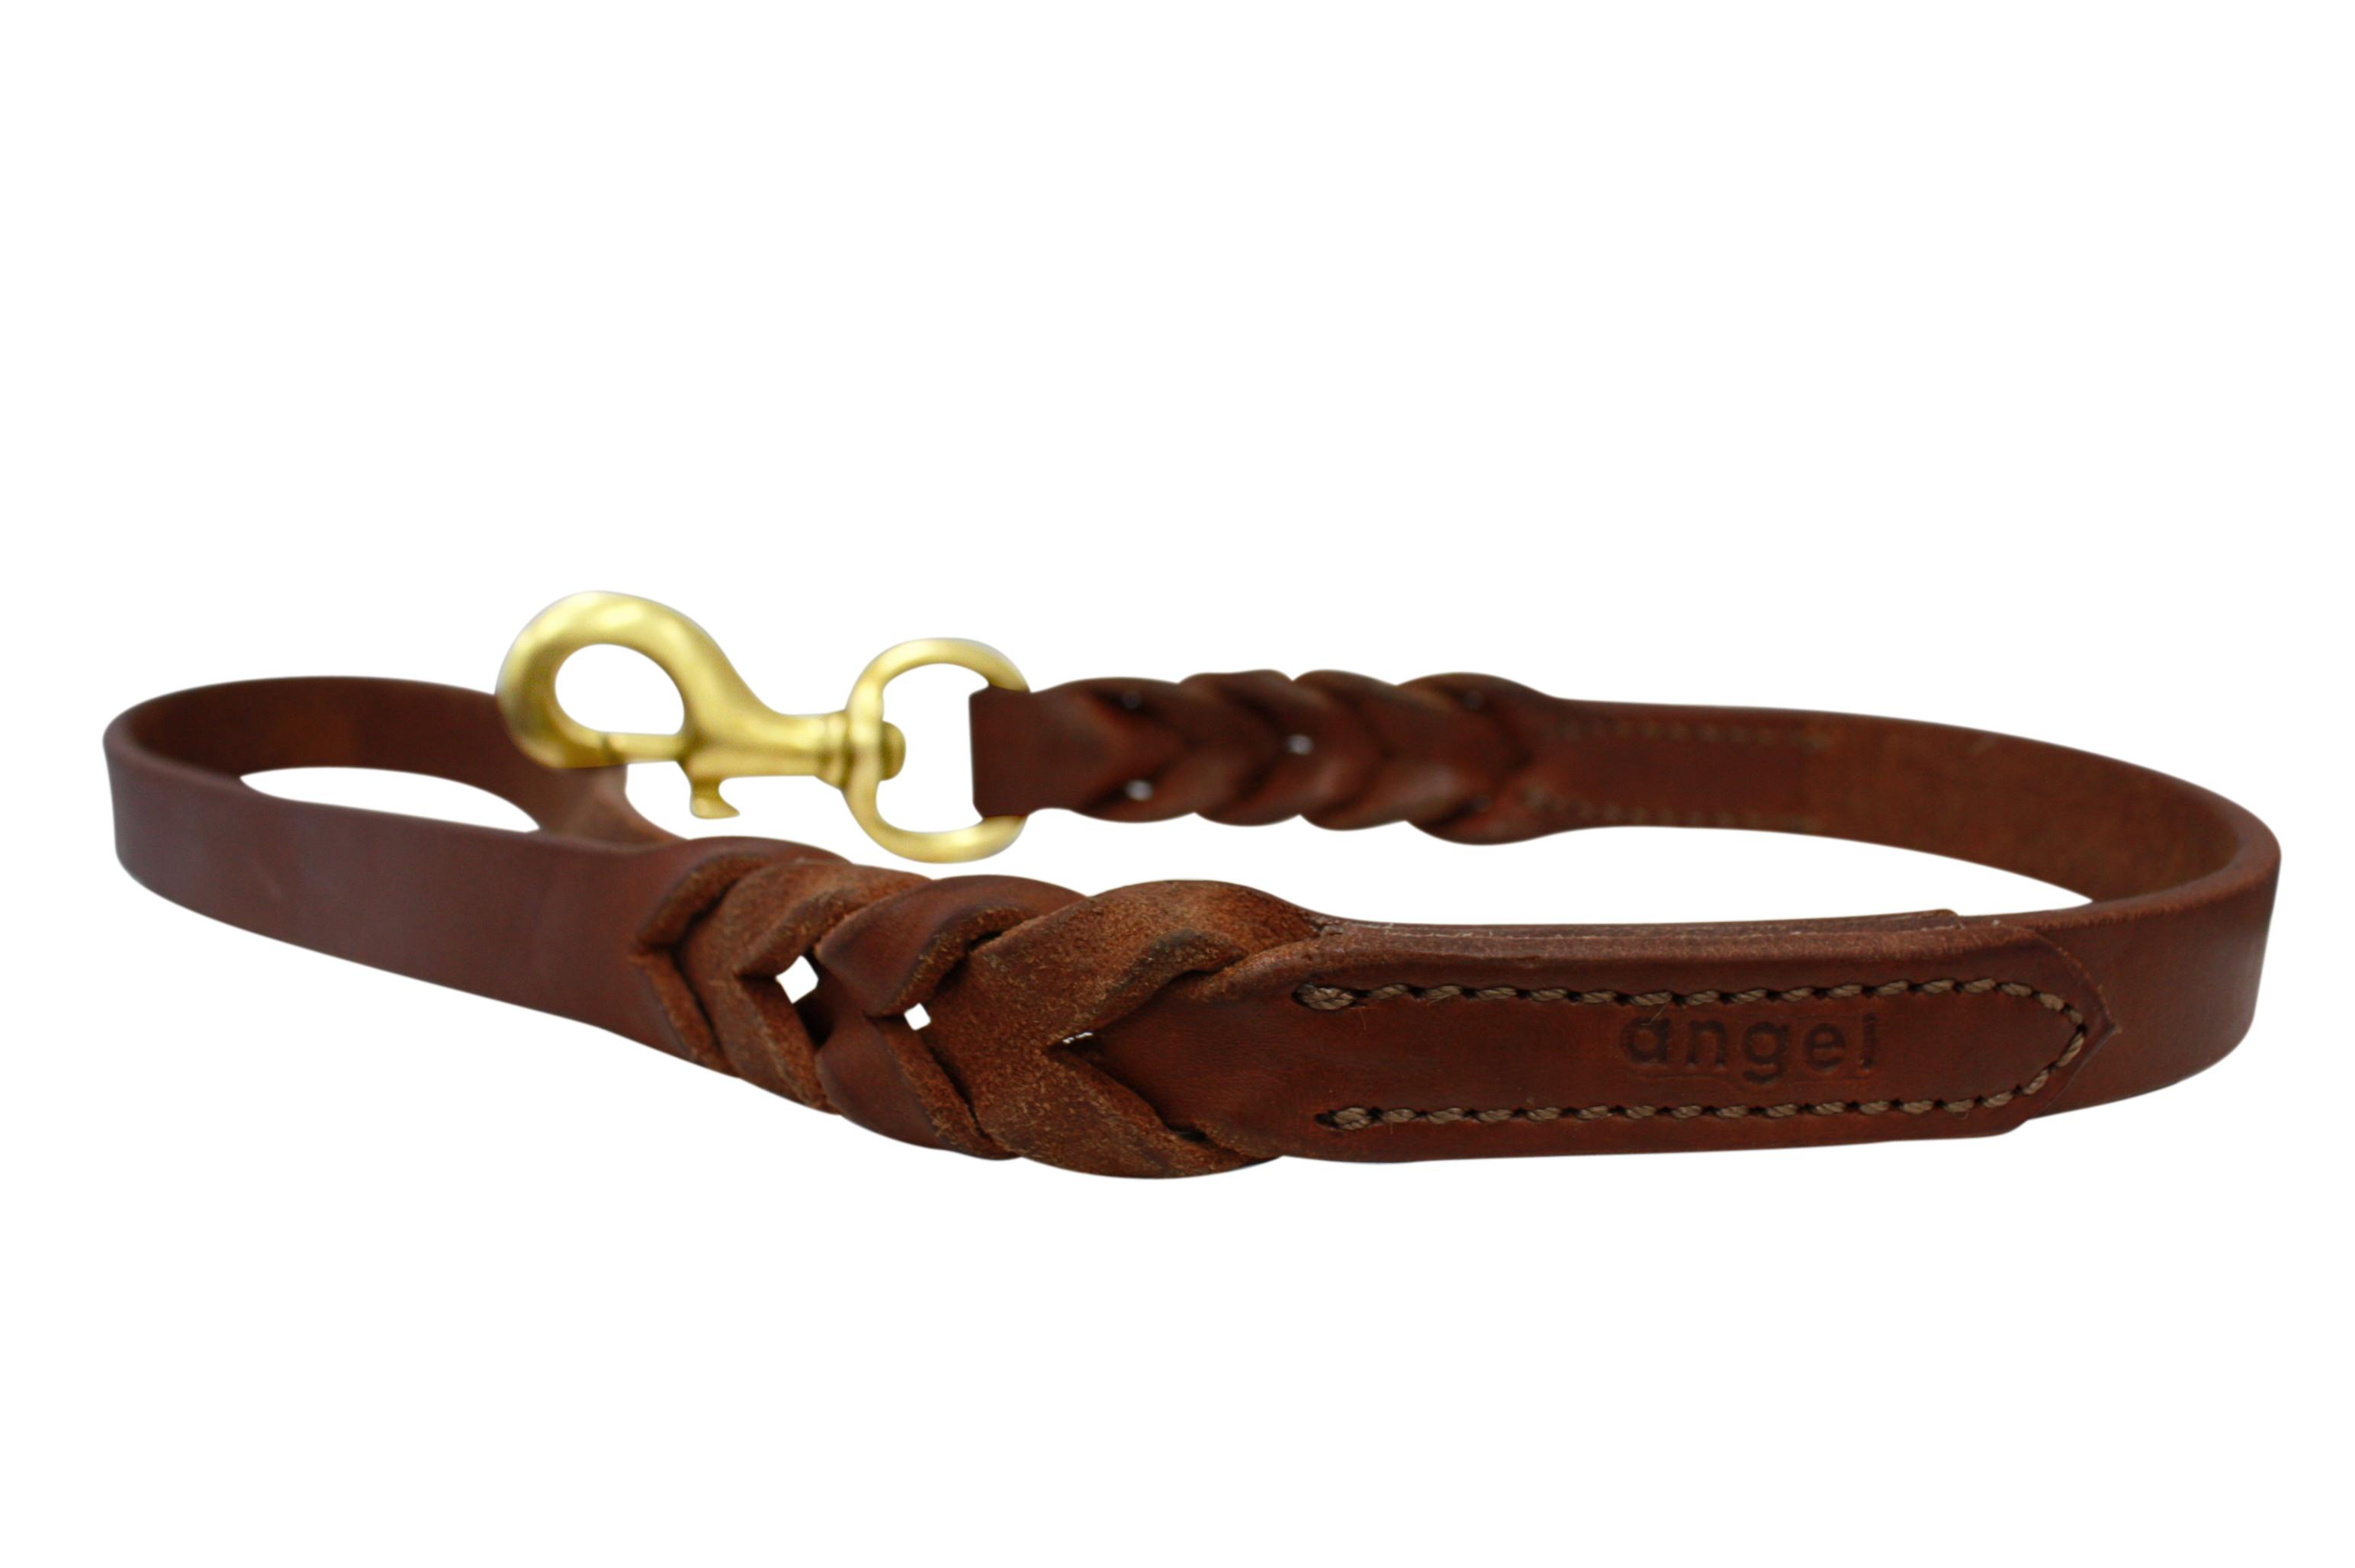 Angel Leather Braided Dog Leash, Brown, 4-ft x 0.5-in